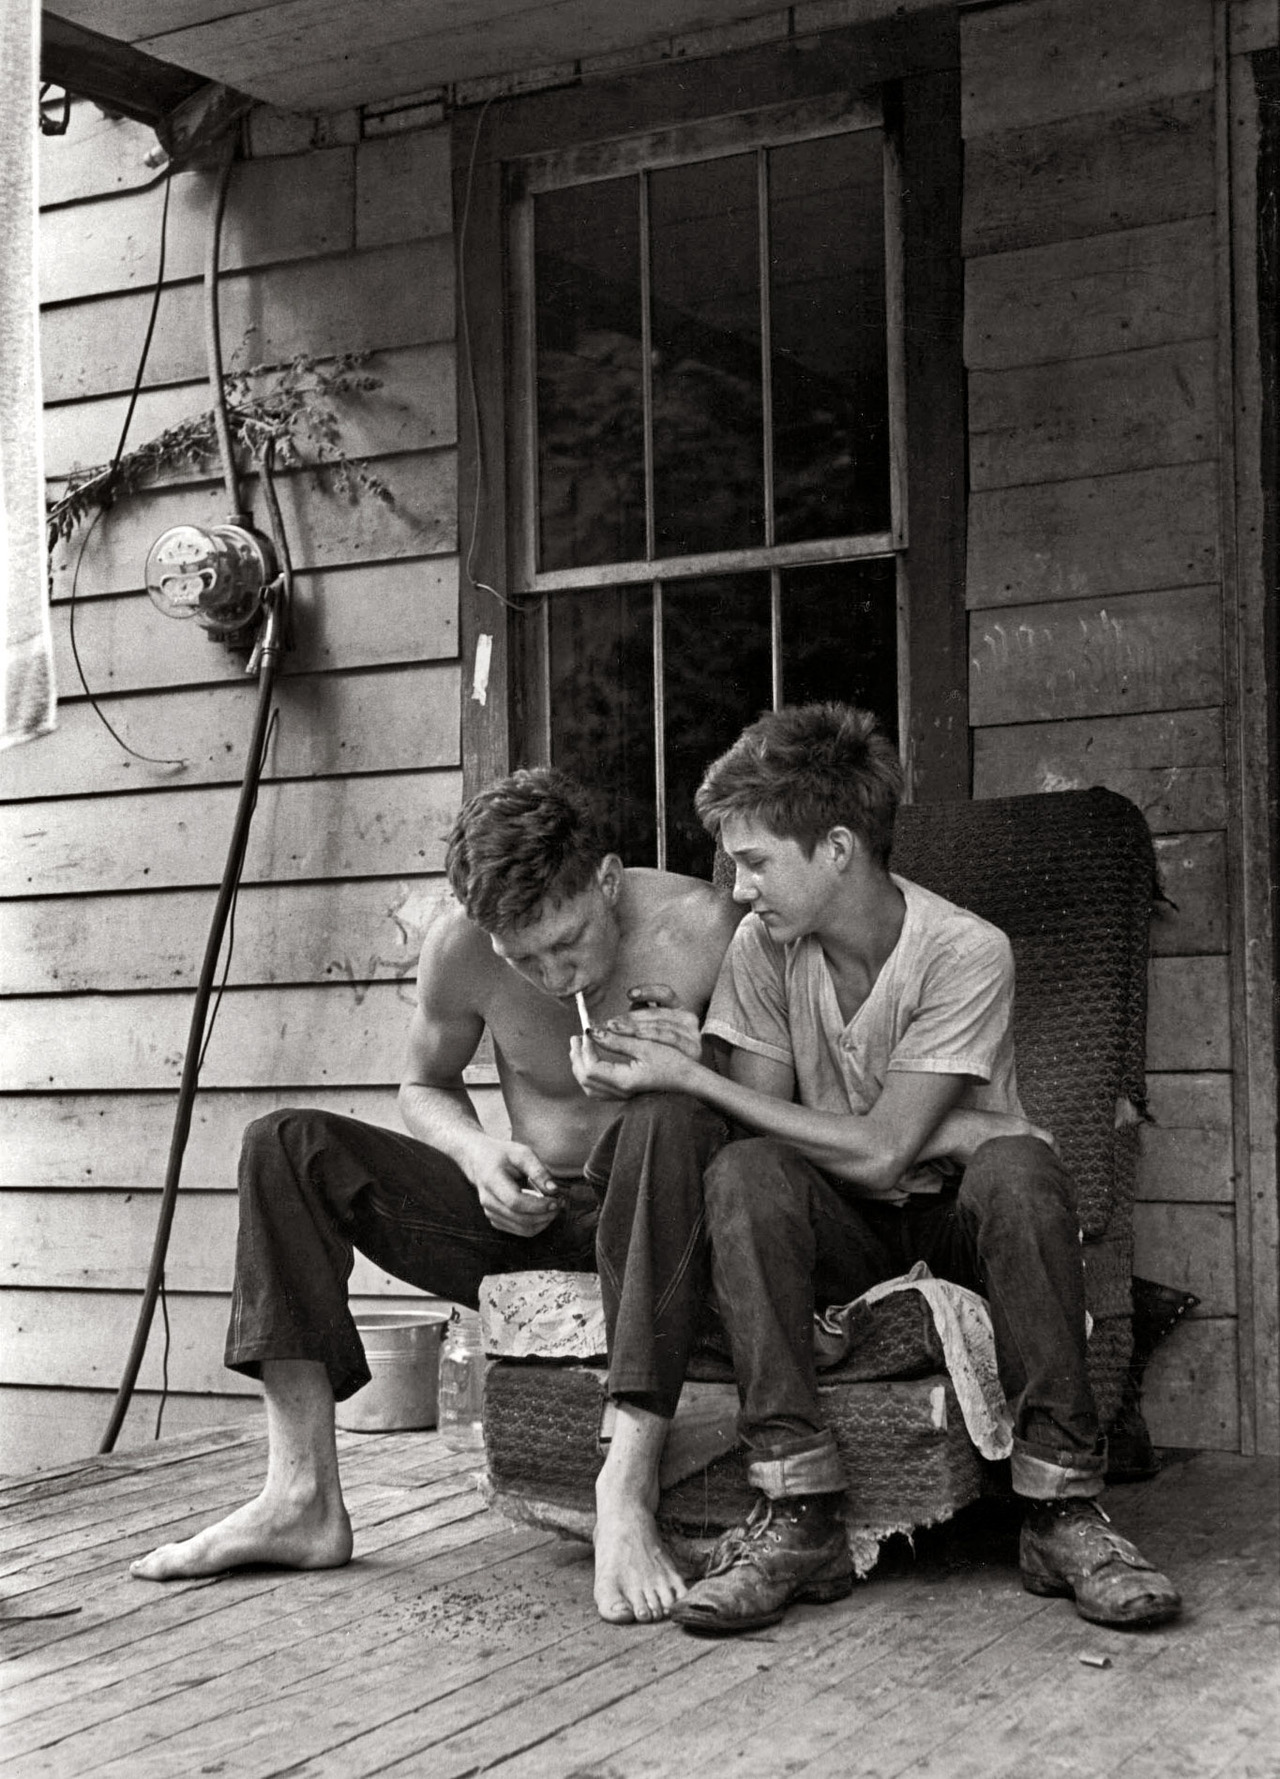 bygoneamericana:  Boys sitting on porch lighting cigarette. Leatherwood, Kentucky, 1964. By William Gedney